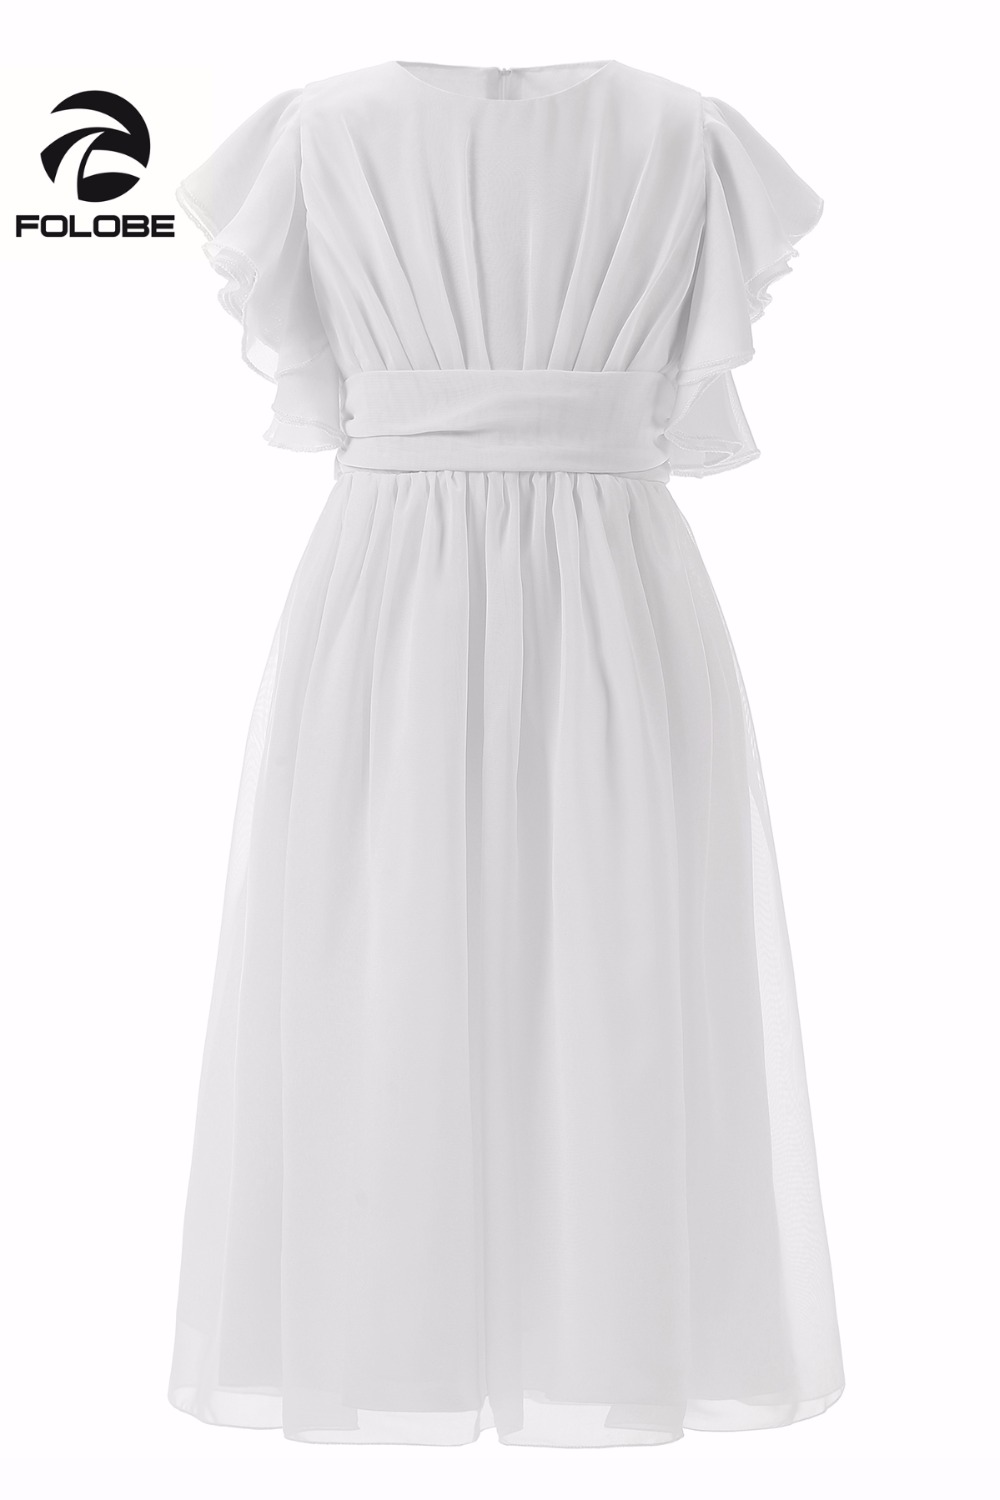 Simple White Chiffon Ruffles Pleats   Flower     Girl     Dress   For Wedding First Communion   Dresses   For   Girls   Prom Party   Dresses